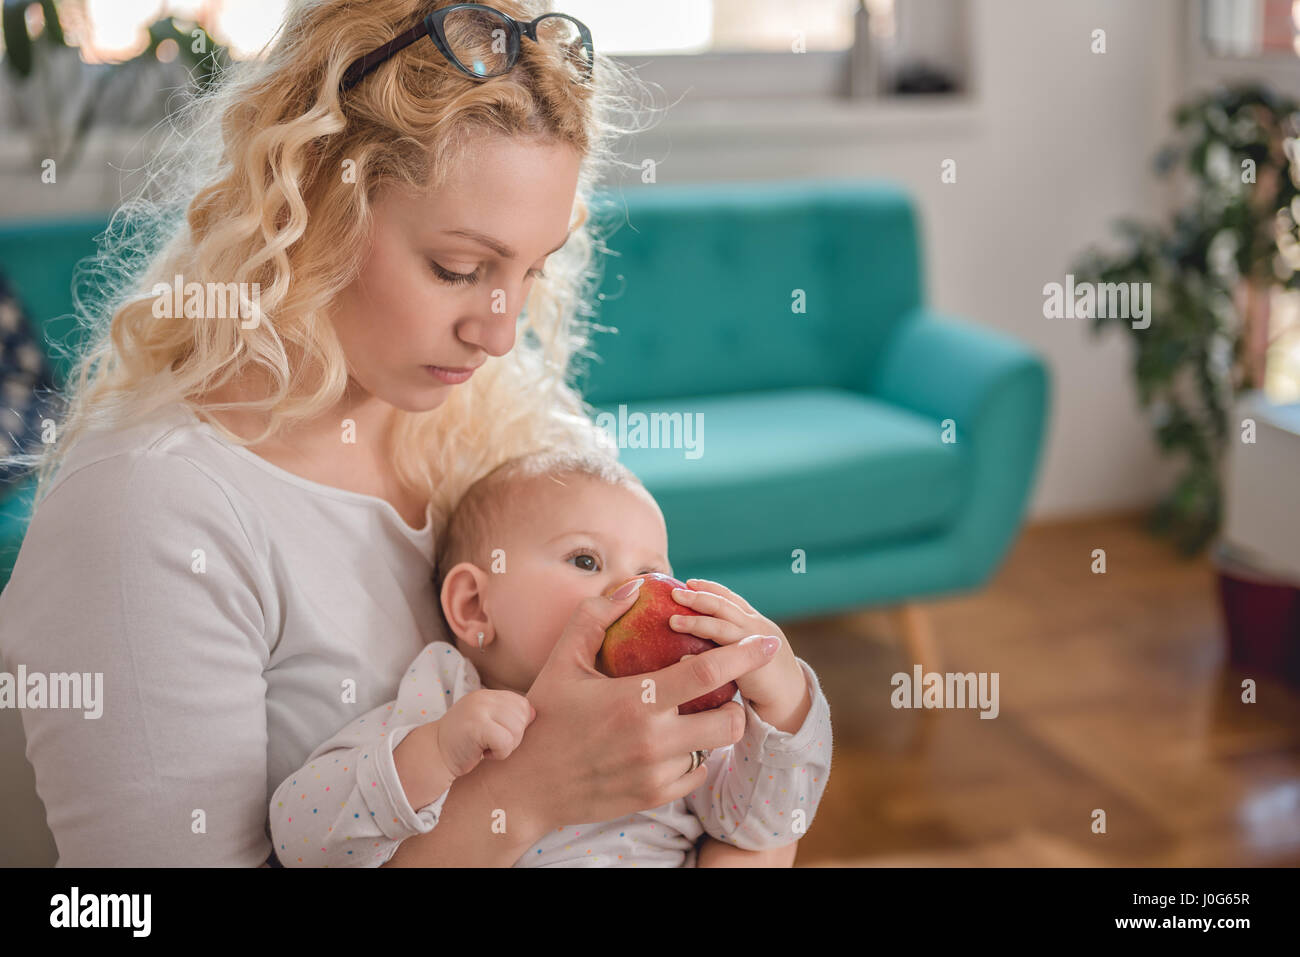 Mother feeding baby at home office with fresh red apple - Stock Image